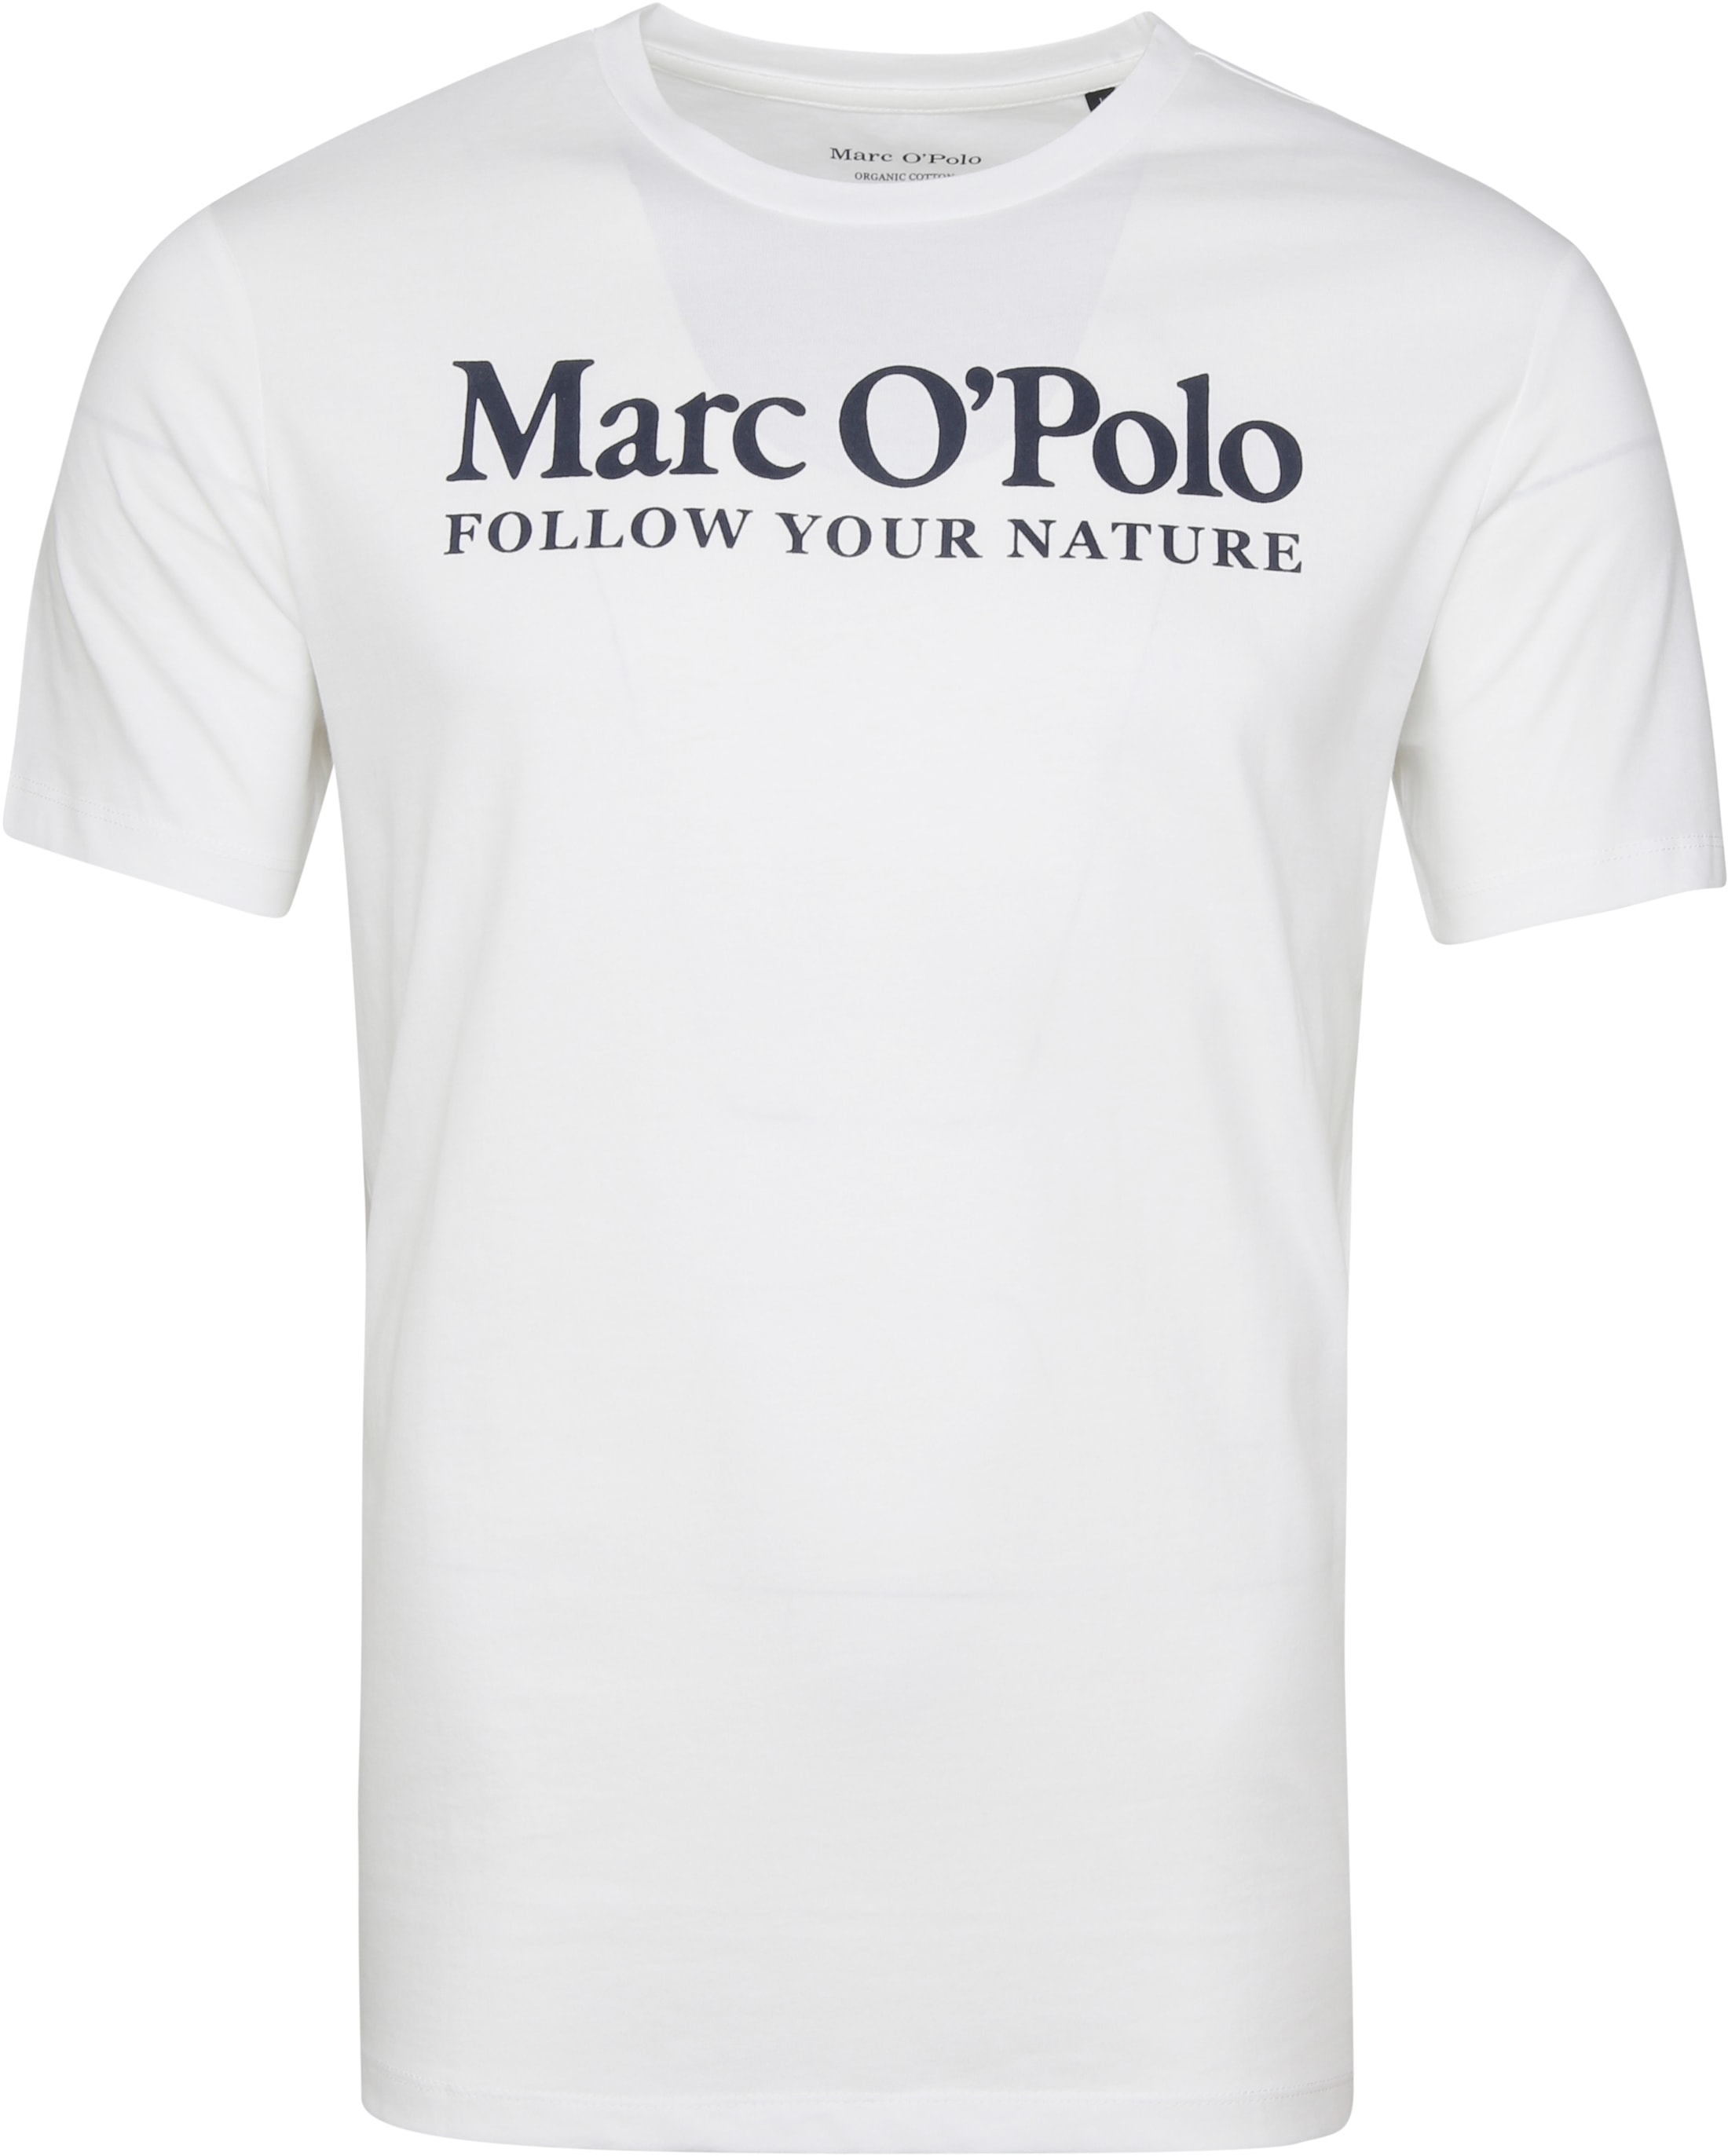 945ff13d8b Marc O'Polo T-Shirt Nature Weiß 924222051244 online kaufen   Suitable